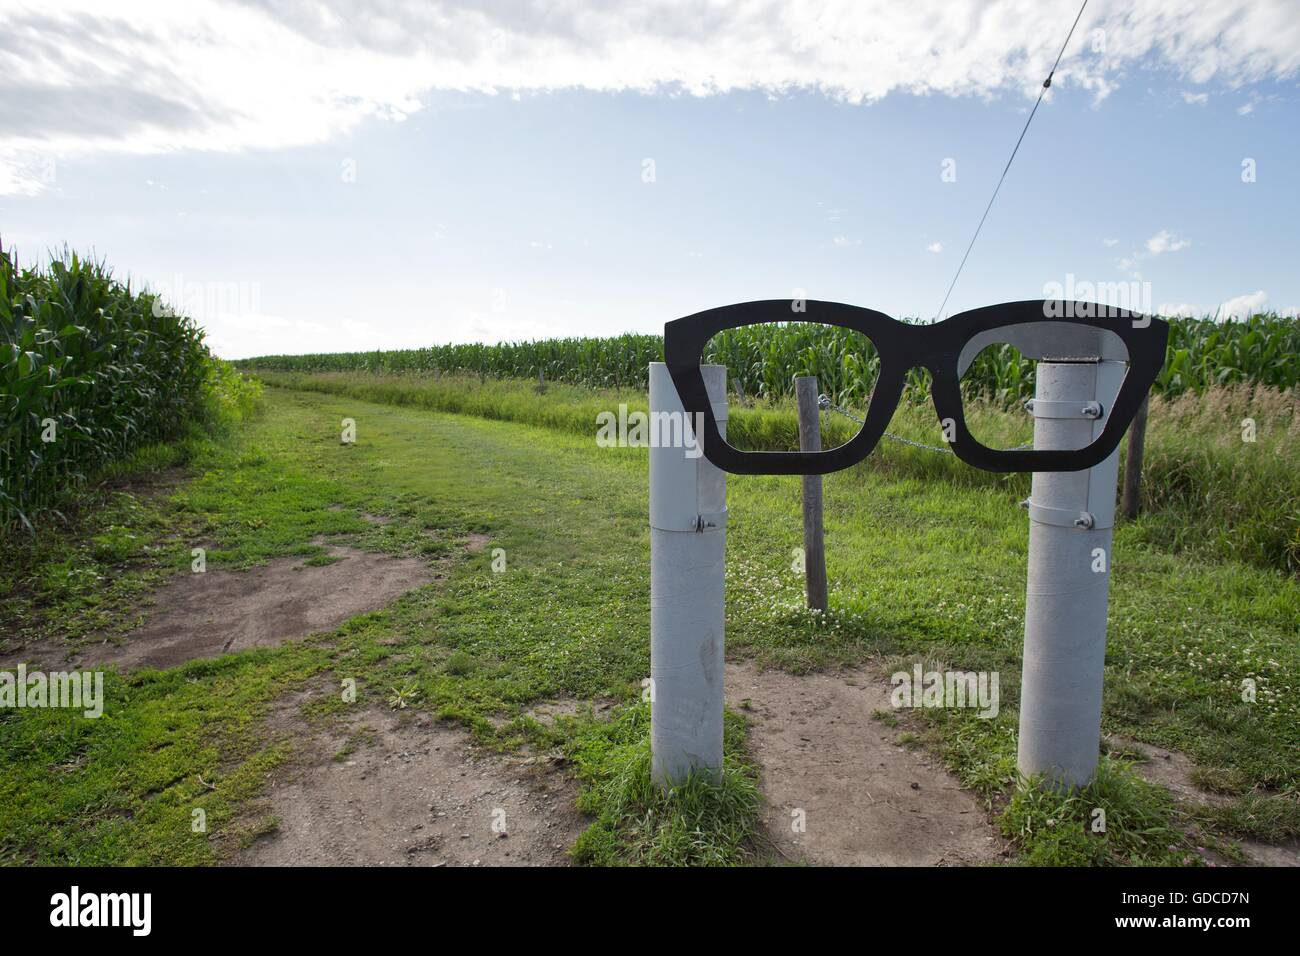 The site of the airplane crash that killed Buddy Holly, The Big Bopper, and Richie Valens in 1959 near Clear Lake, - Stock Image